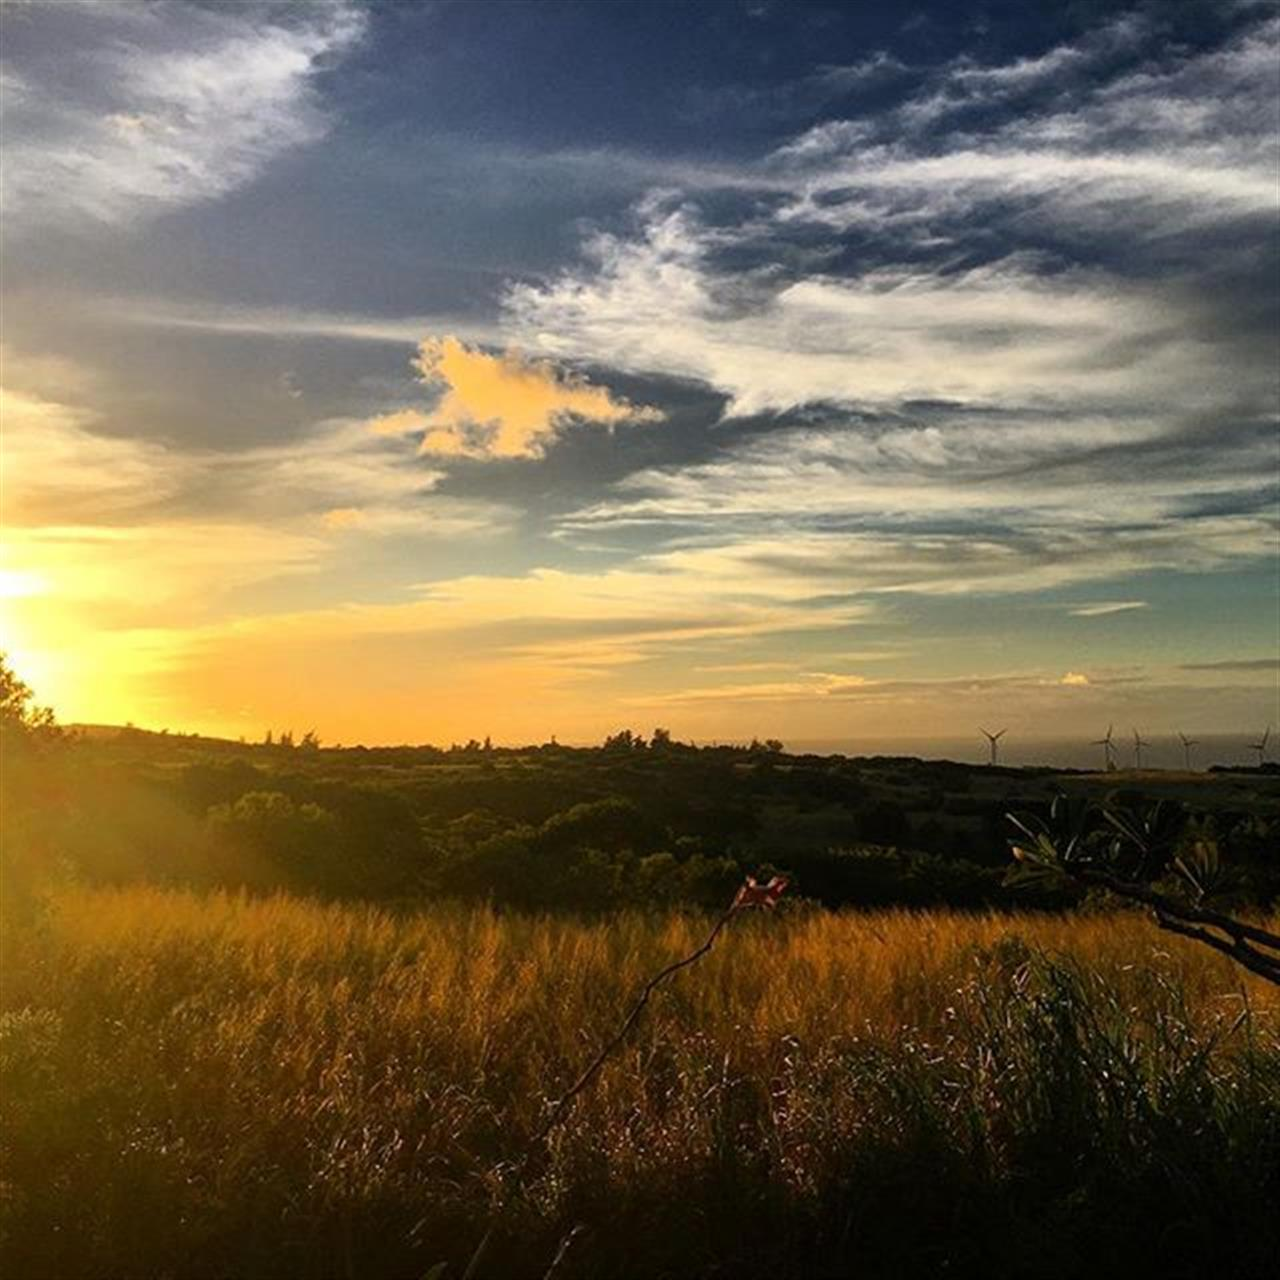 What a lovely start to a Sunday evening! ? A Sunday evening well spent brings a week full of content!  #sunset #derbyfarm #beingbrooke #sundayfunday #hawi #kohala #beemary #hnnsunrise #leadingrelocal